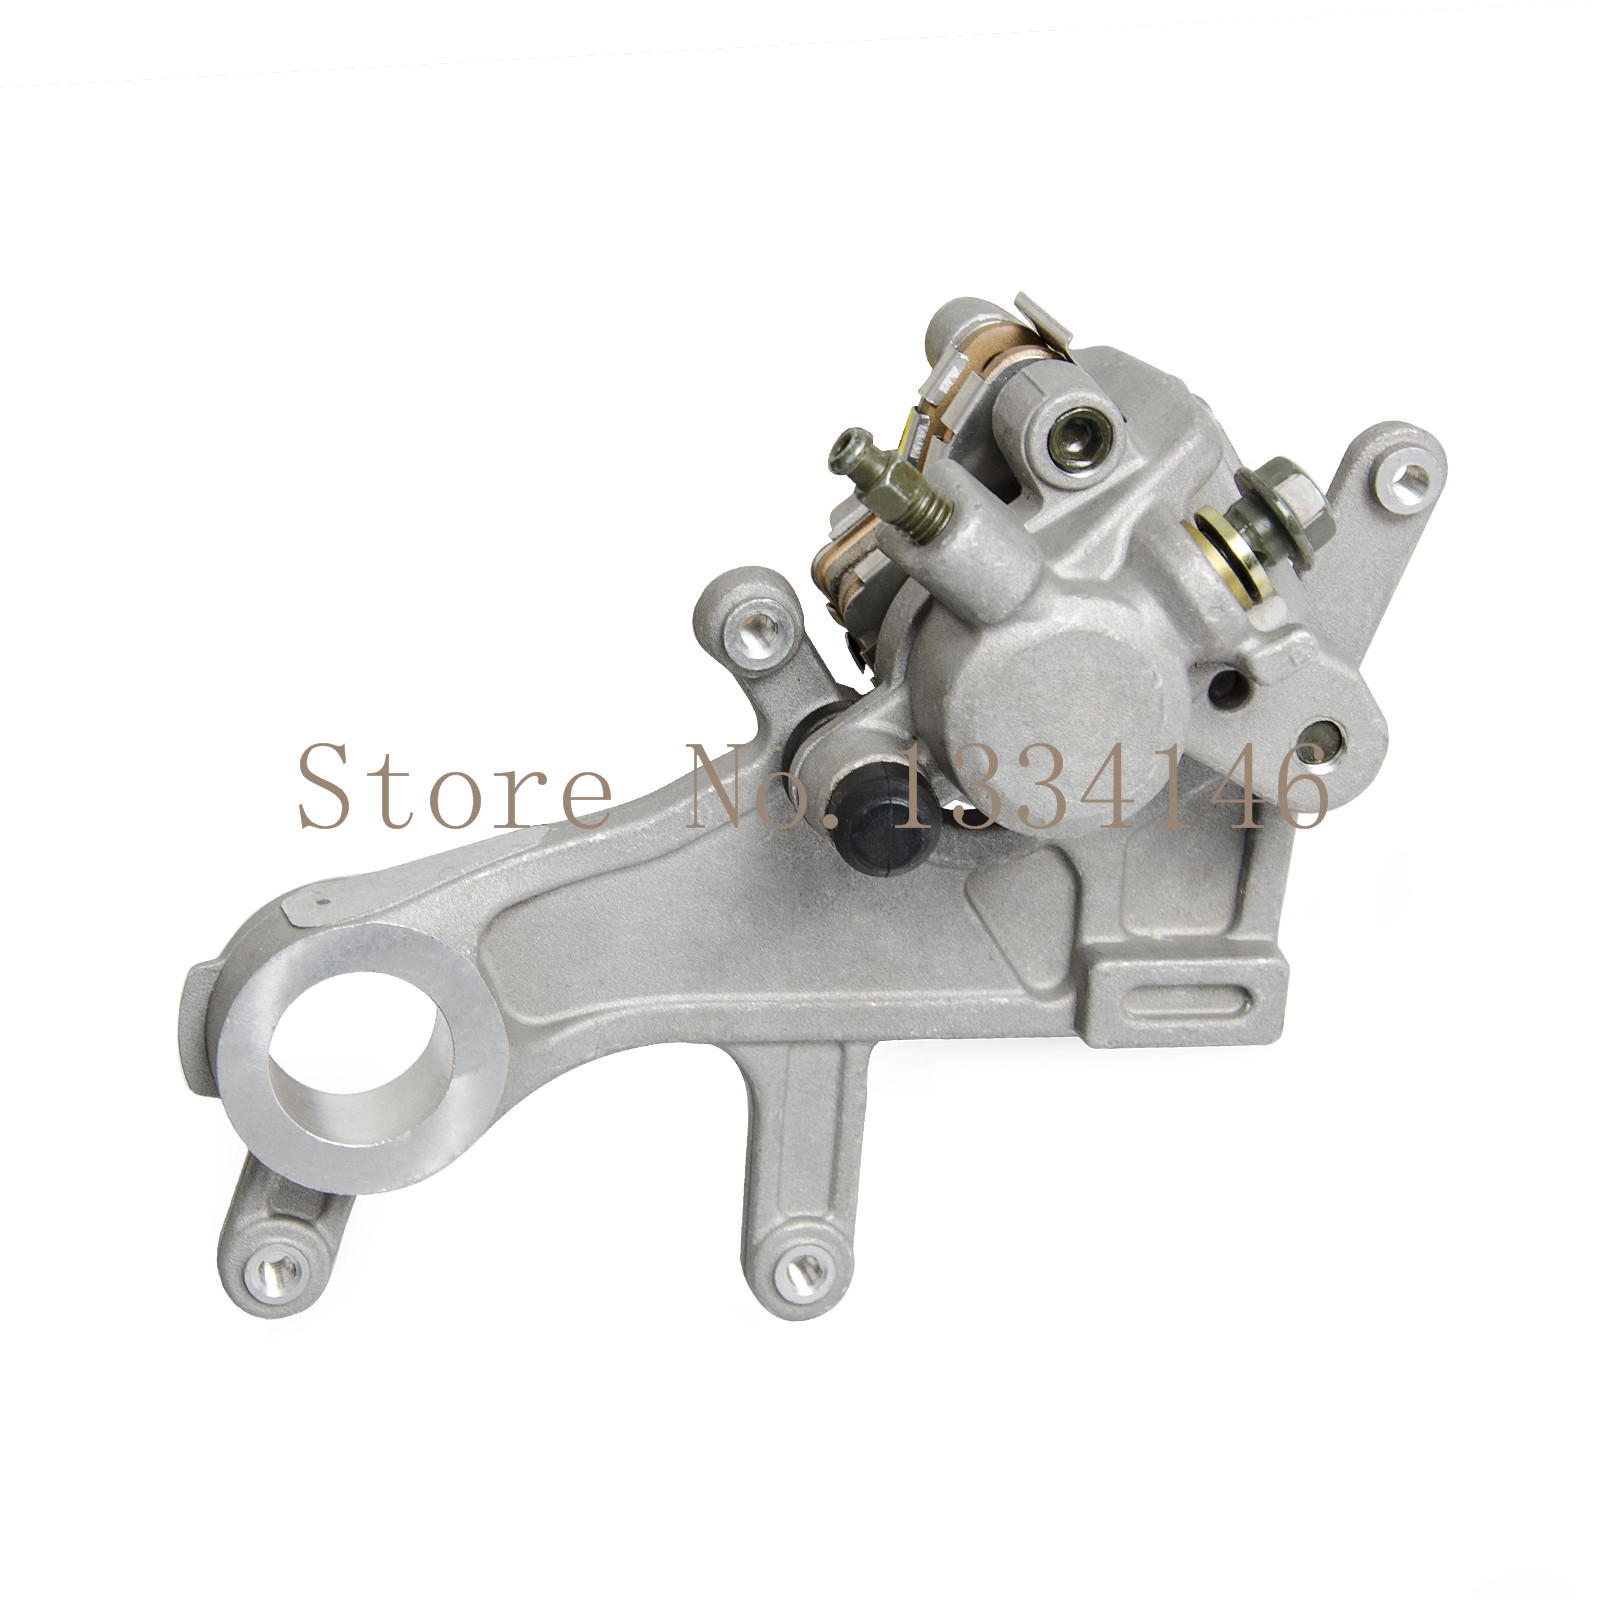 New Rear Brake Caliper For Honda CRF250X CRF 250X 2004-2009 2012-2013 for honda crf 250r 450r 2004 2006 crf 250x 450x 2004 2015 red motorcycle dirt bike off road cnc pivot brake clutch lever